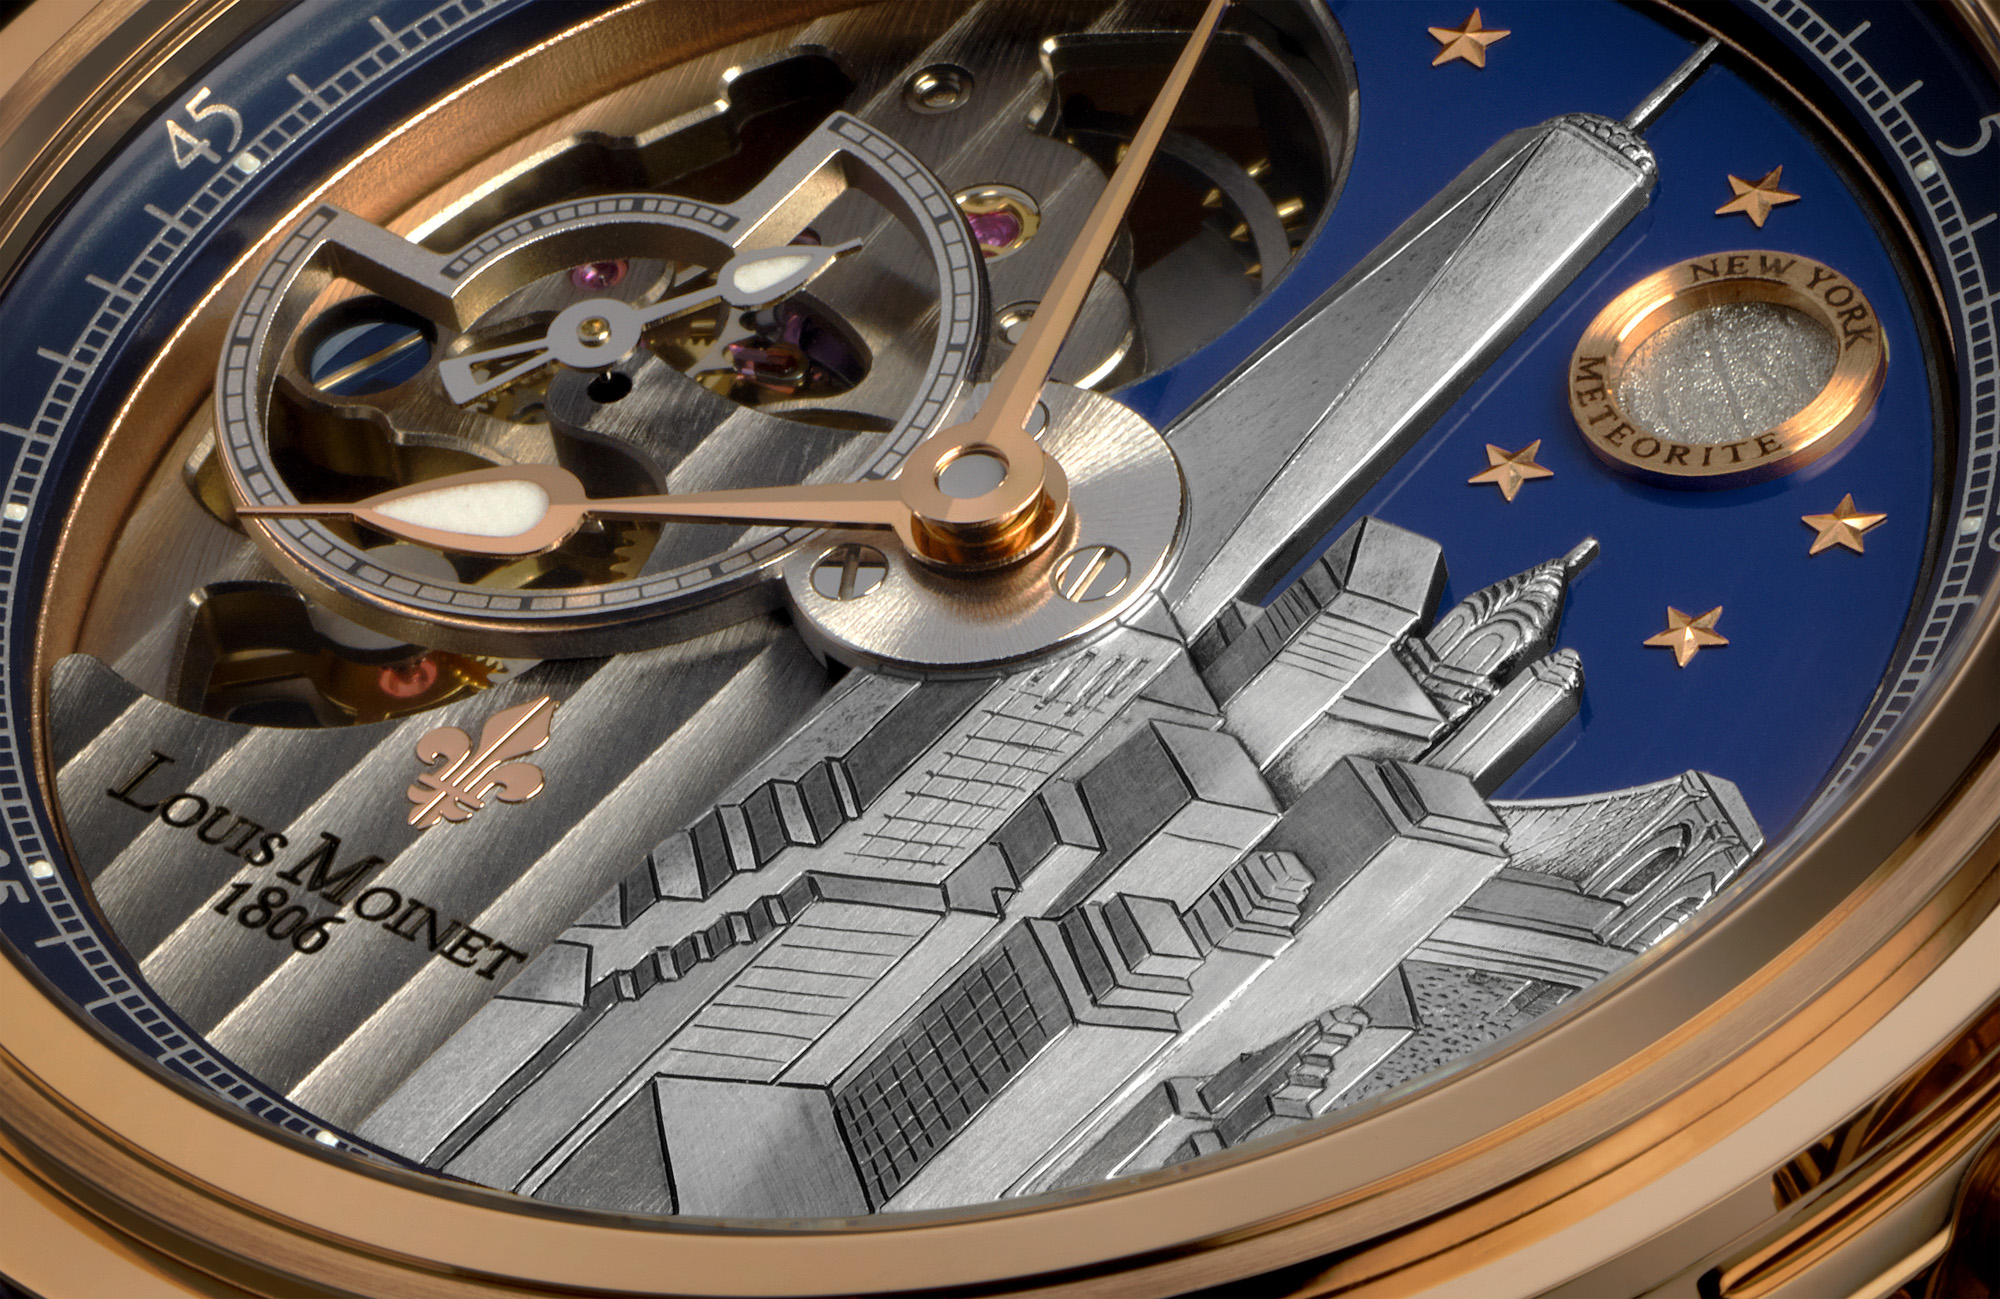 Louis Moinet Mecanograph New York - Dial